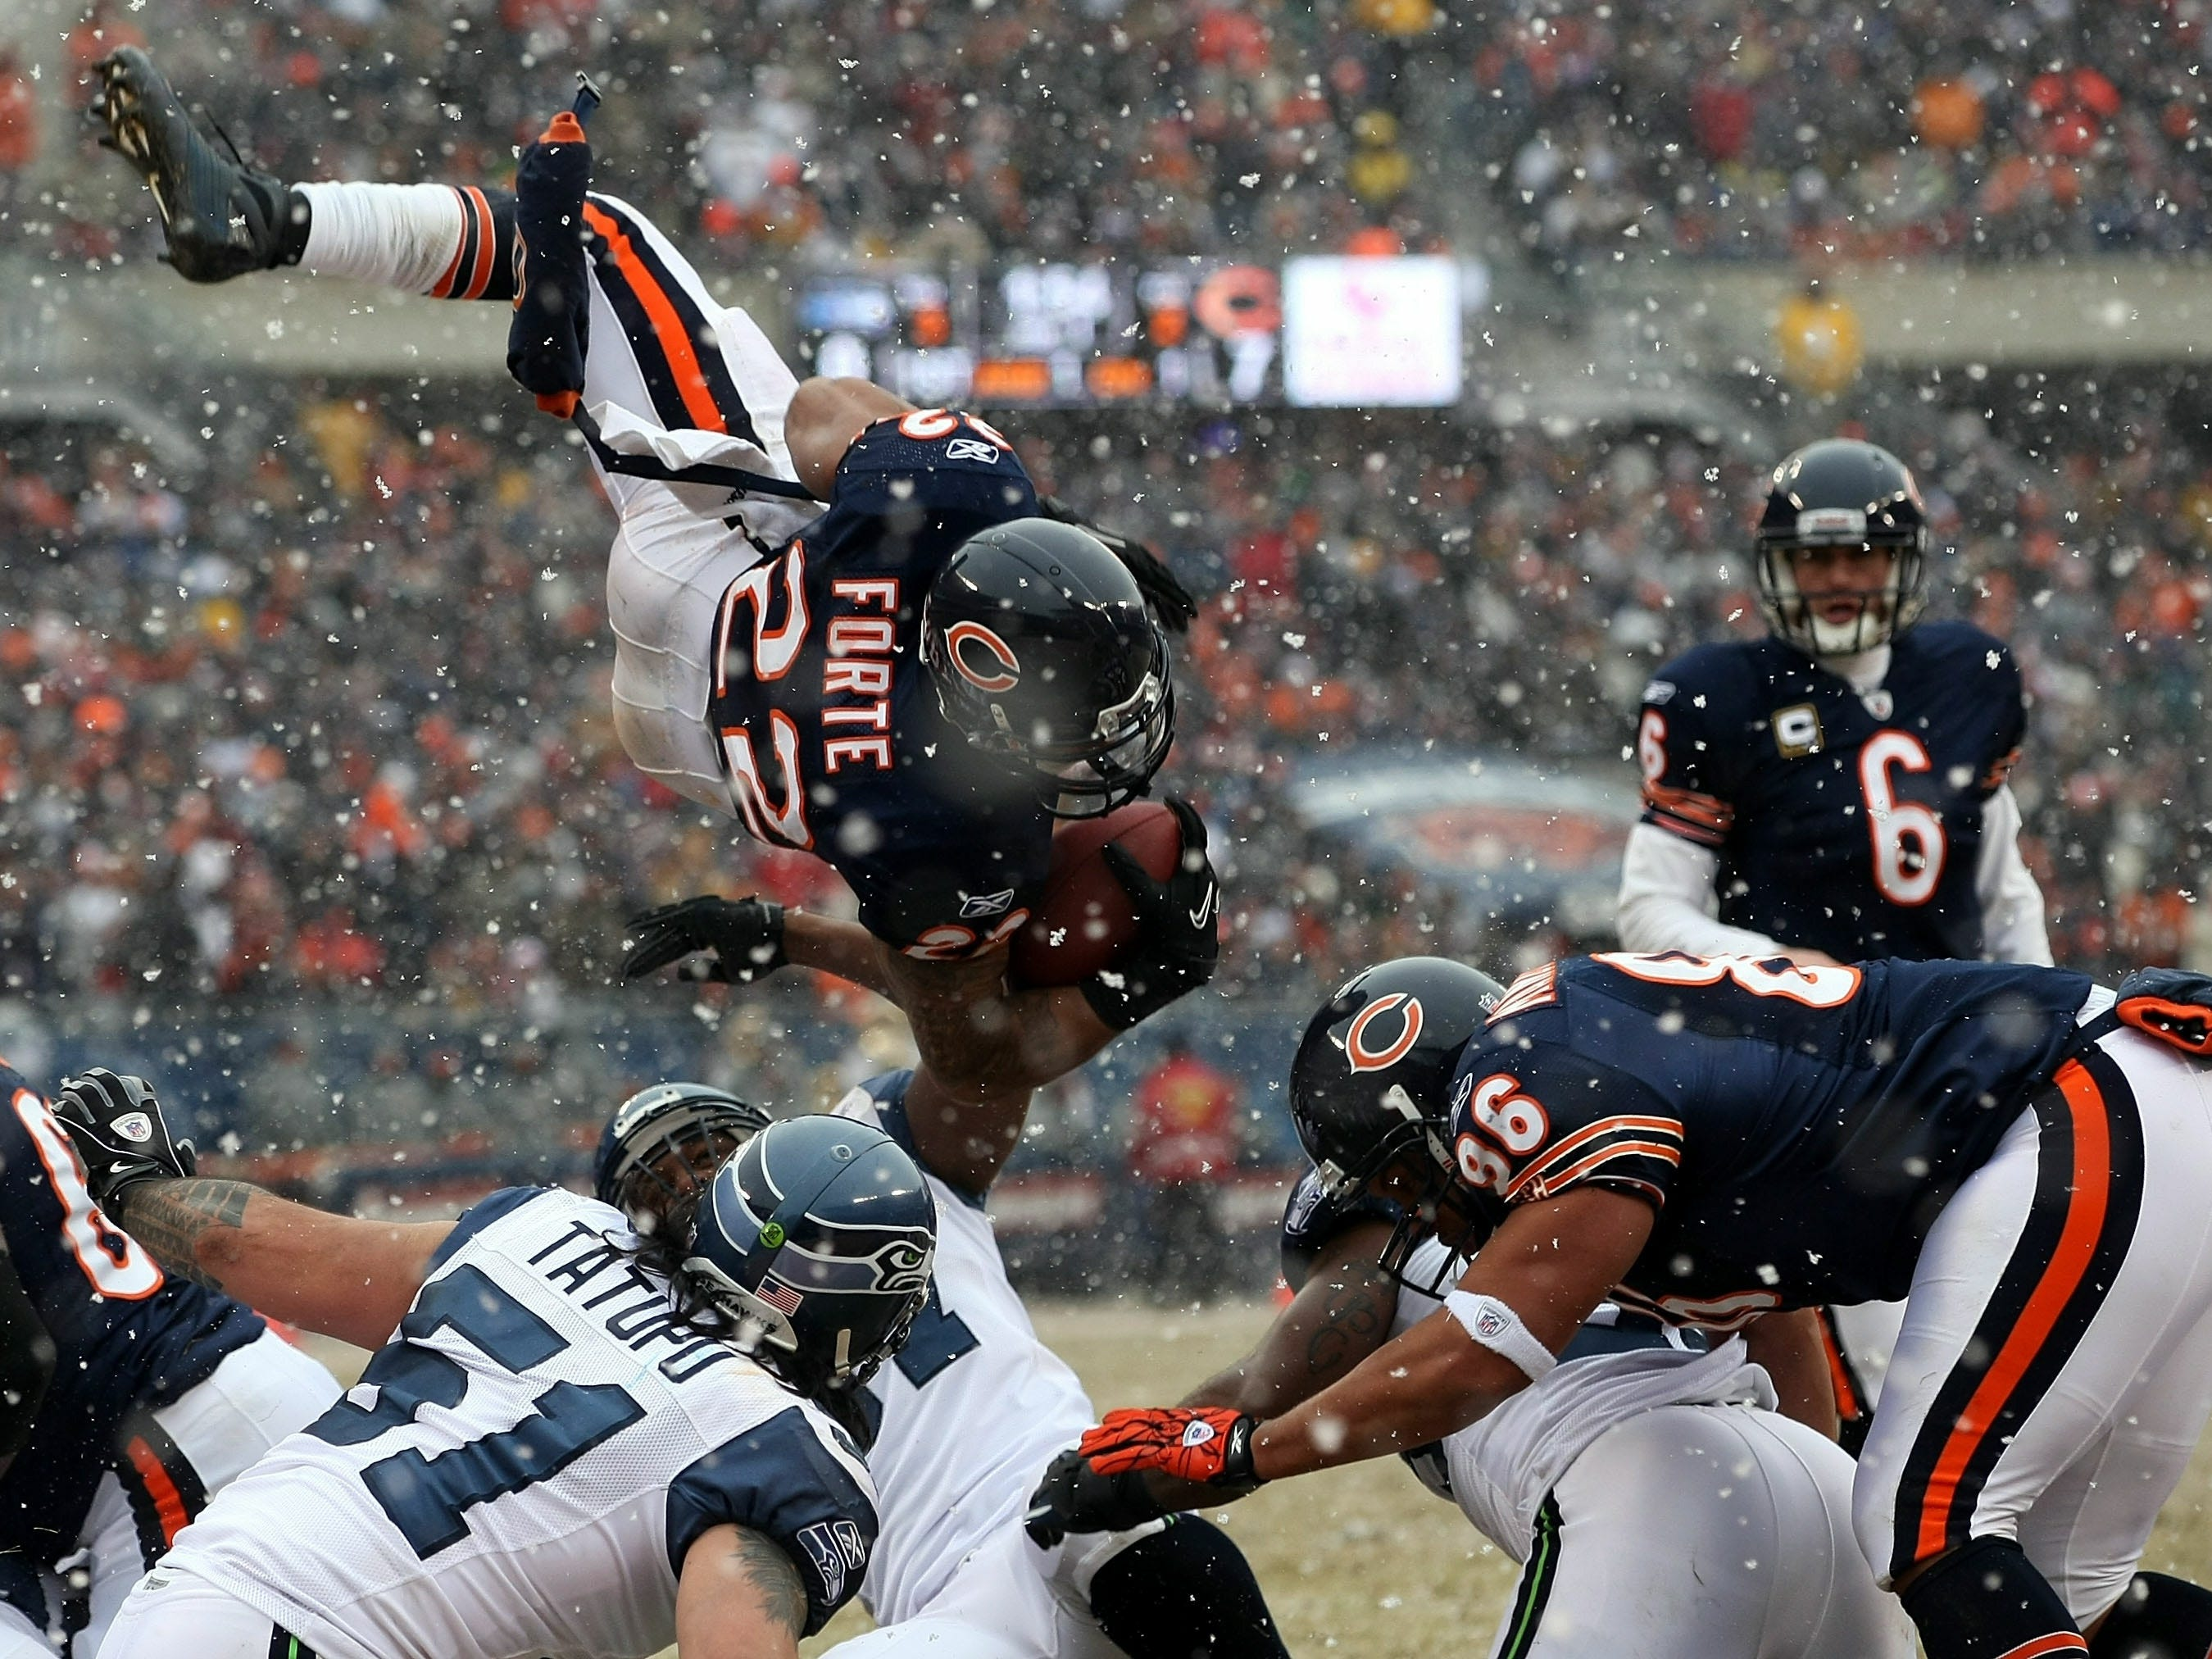 Jan. 16, 2011: Chicago Bears running back Matt Forte attempts to jump into the end zone but is stopped short by the Seattle Seahawks during a 2010 NFC divisional playoff game at Soldier Field. The Bears won the game, 35-24.